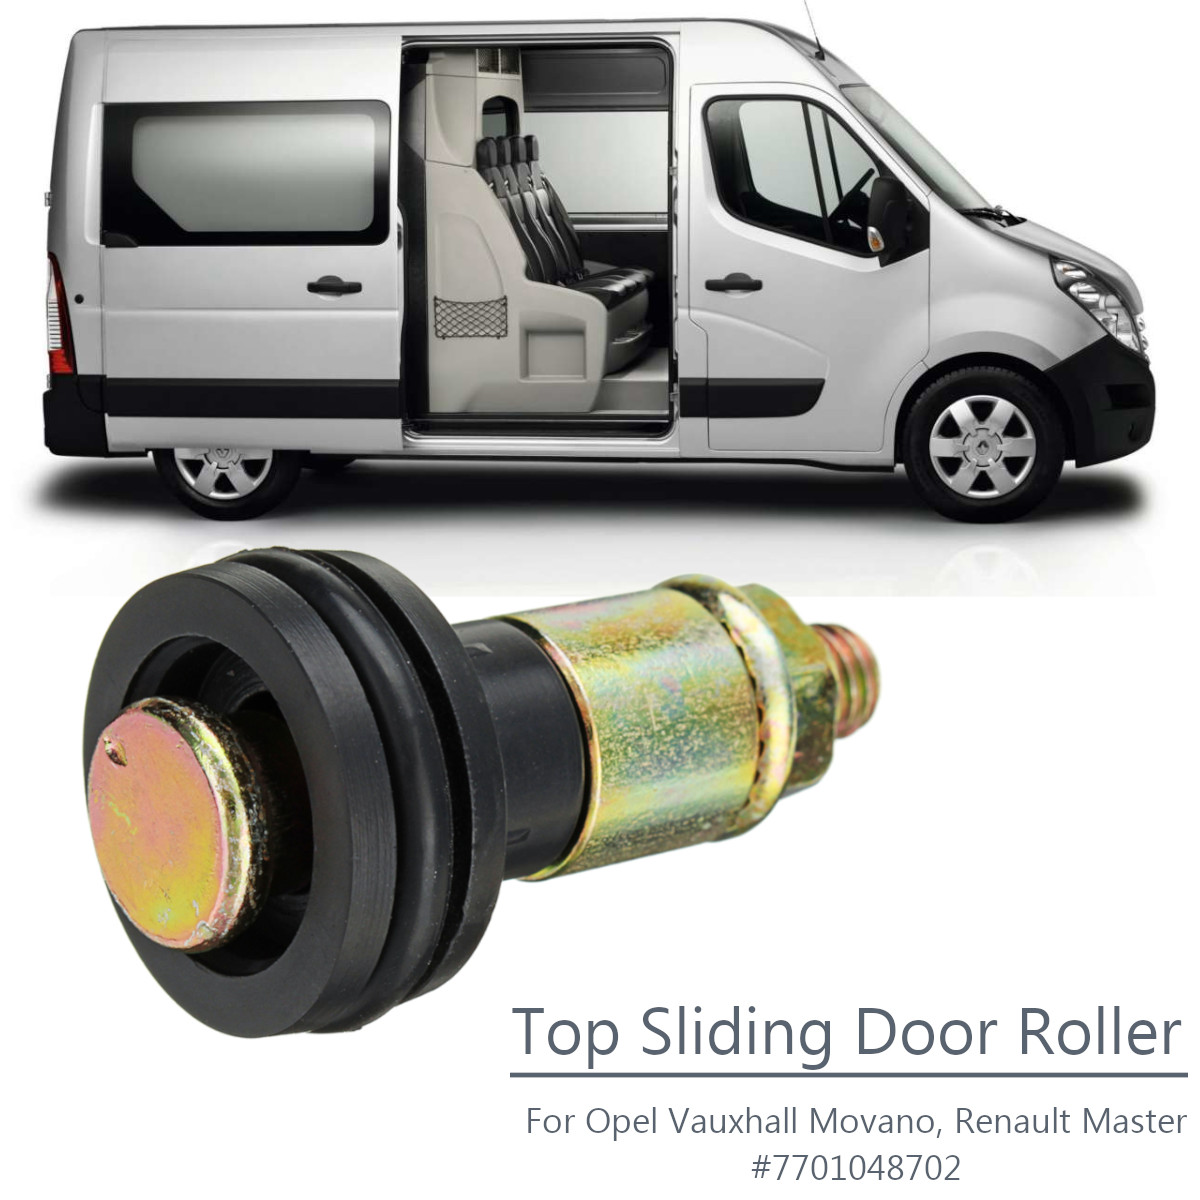 Top Guide Sliding Door Roller 7701048702 For Opel for Vauxhall Movano for Renault MasterTop Guide Sliding Door Roller 7701048702 For Opel for Vauxhall Movano for Renault Master